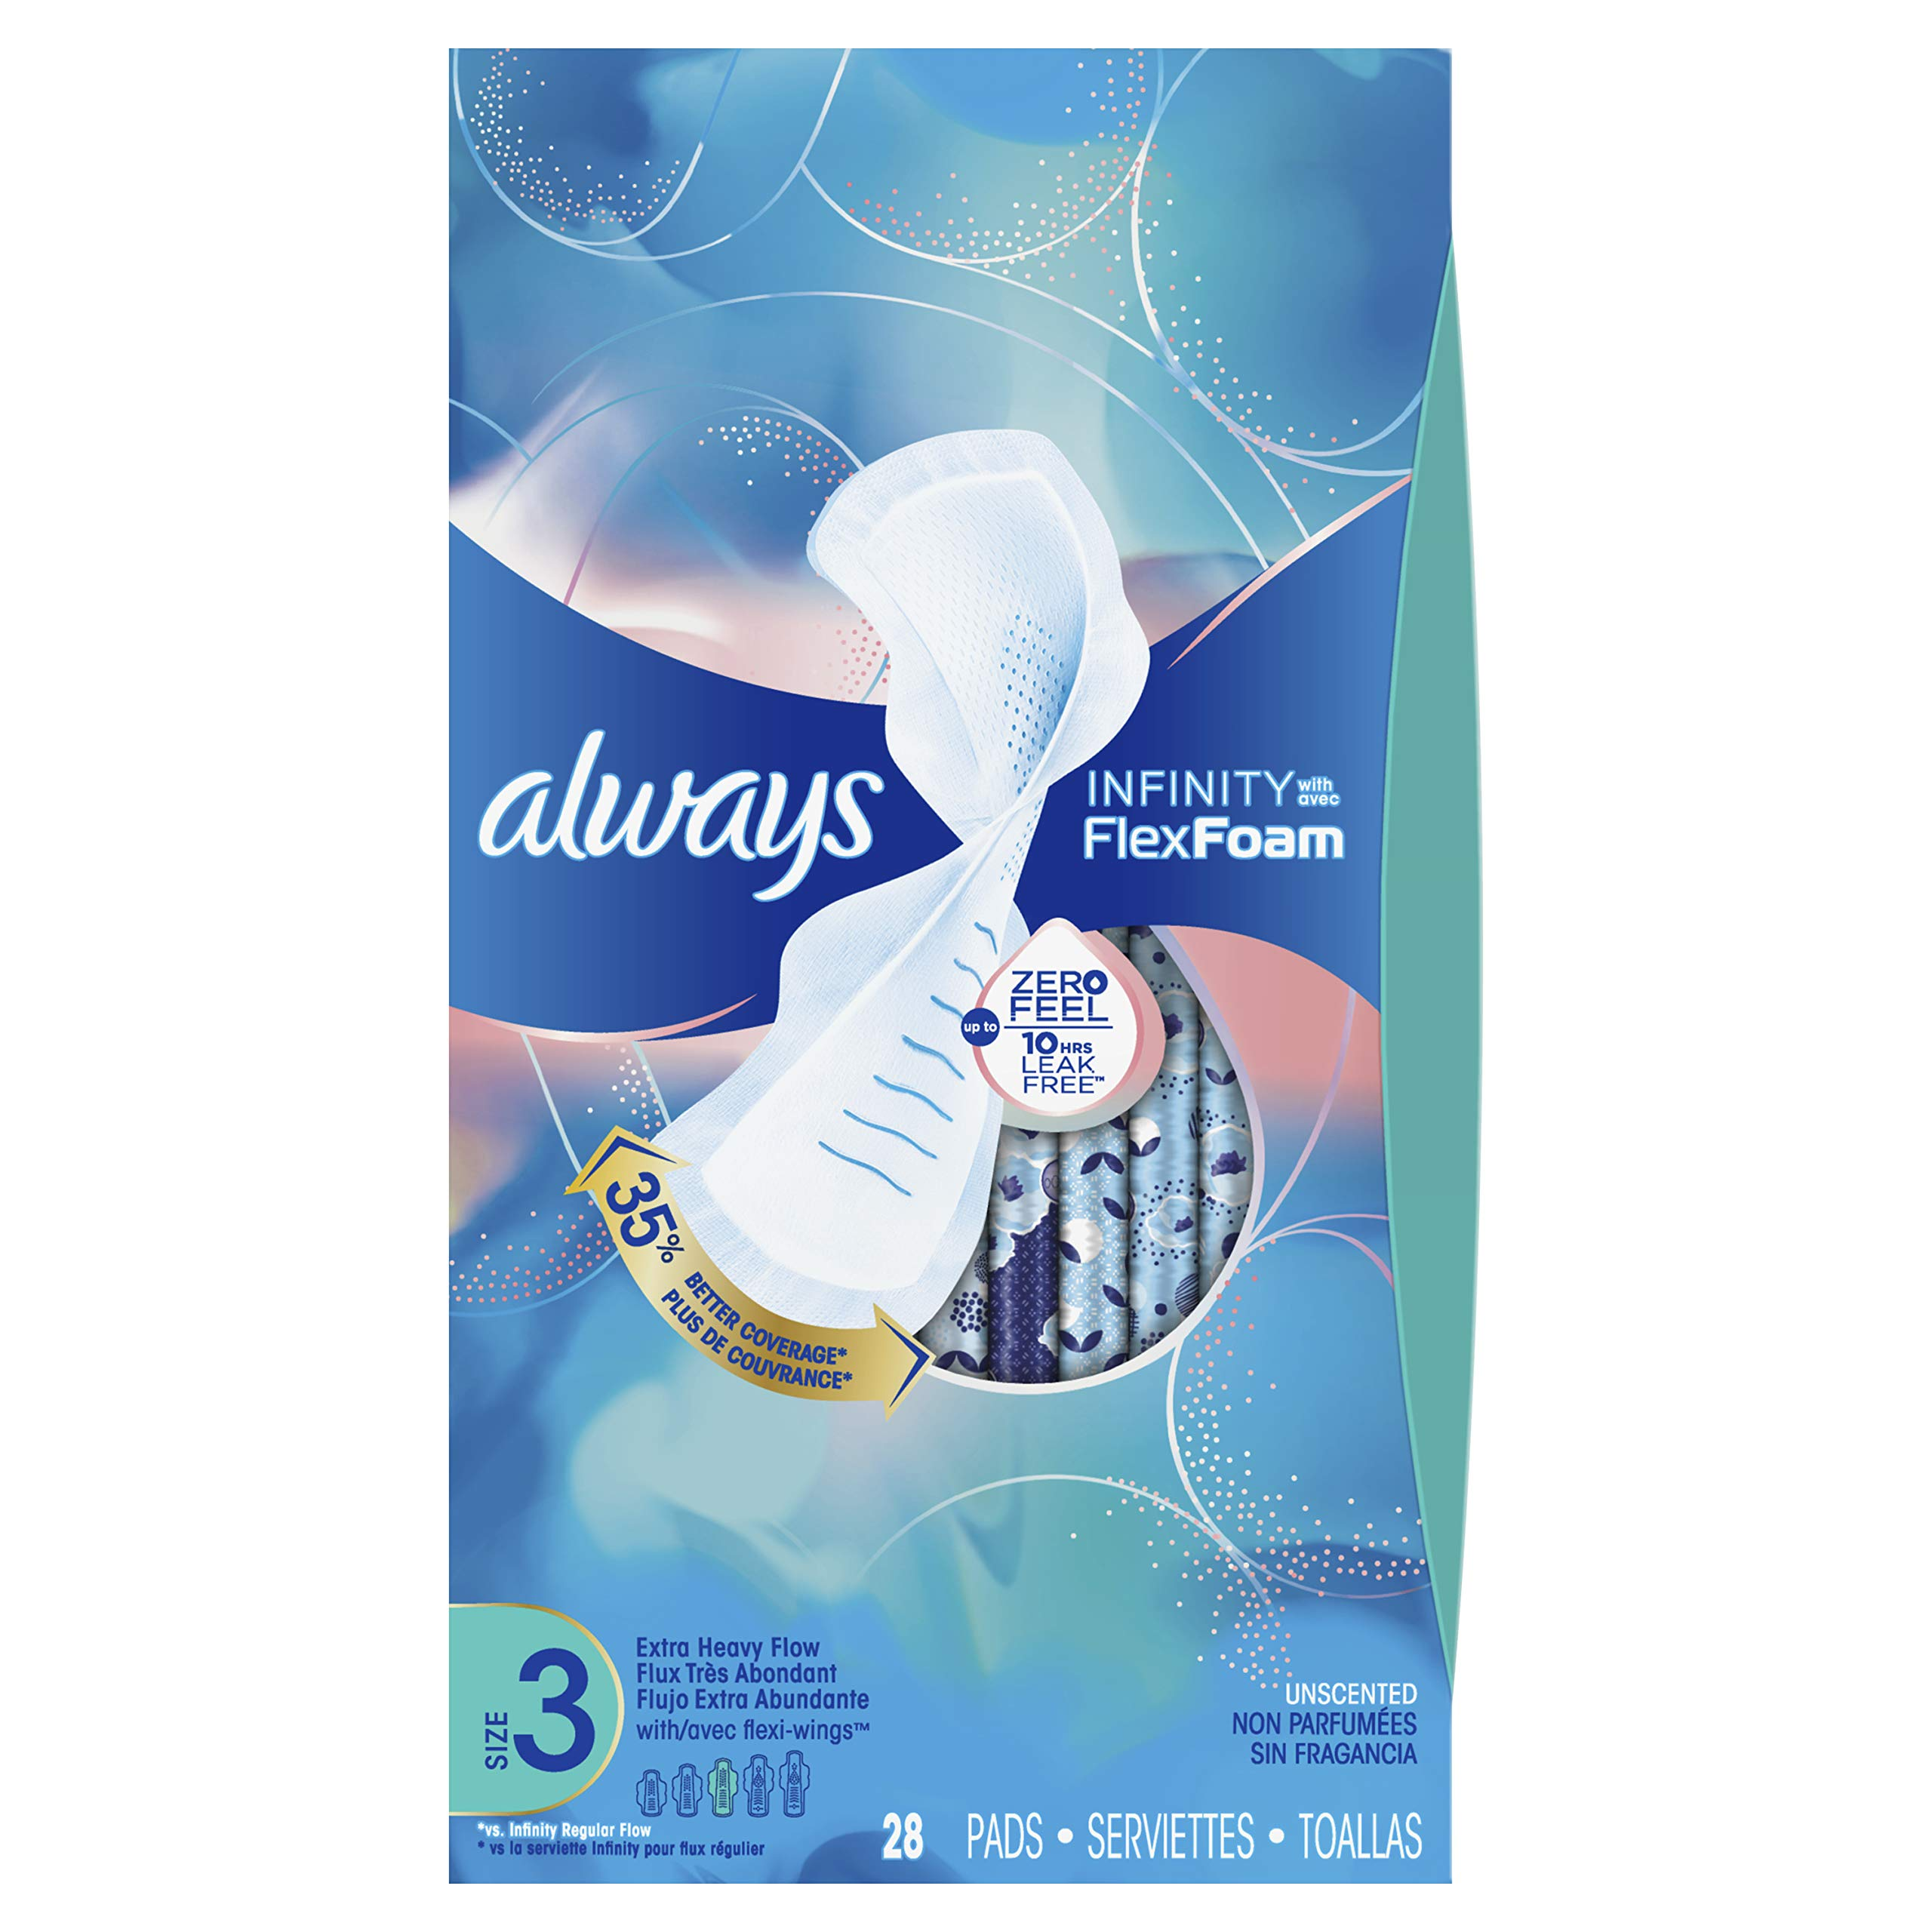 Always Infinity Feminine Pads for Women, Size 3, Extra Heavy Flow Absorbency, with Wings, Unscented, 28 Count - Pack of 3 (84 Count Total) by Always